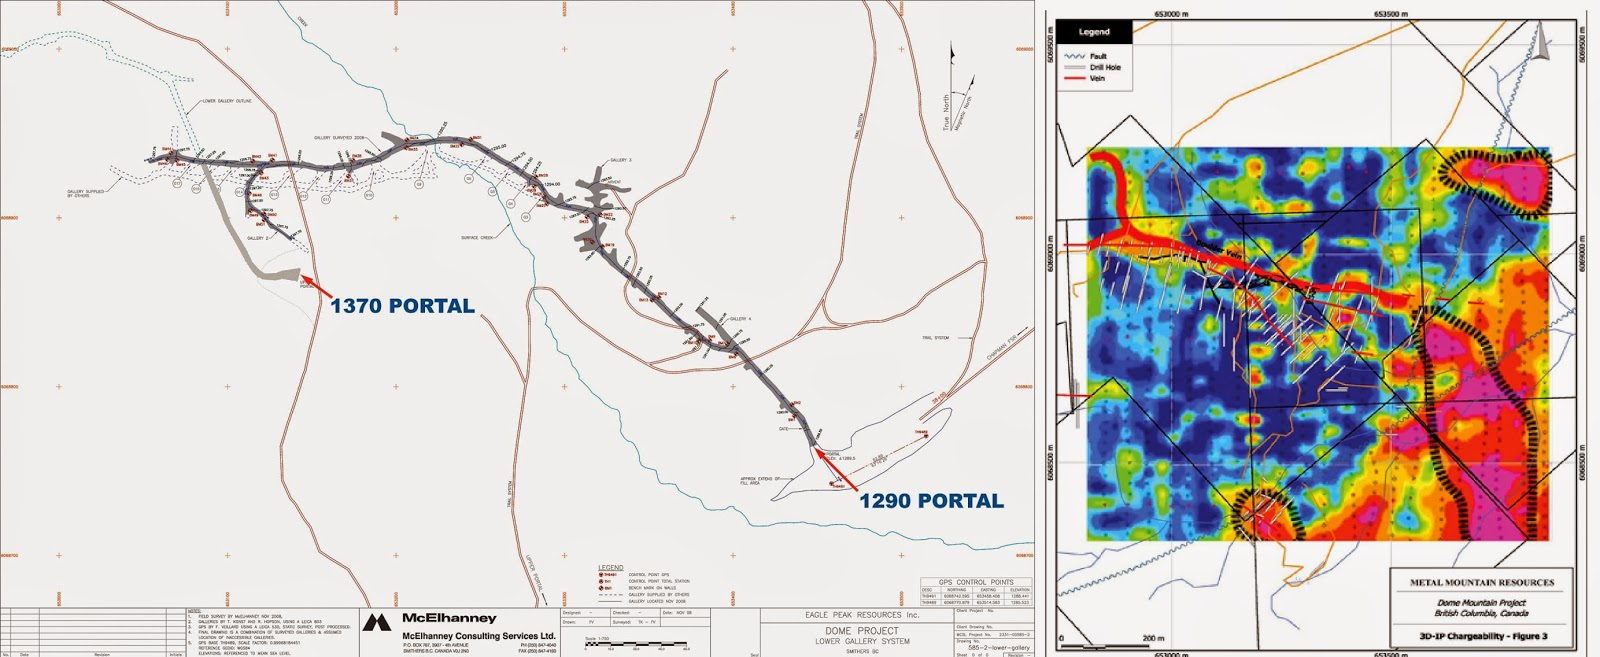 Drill hole Map & 3D IP Chargability Map of Dome Mine